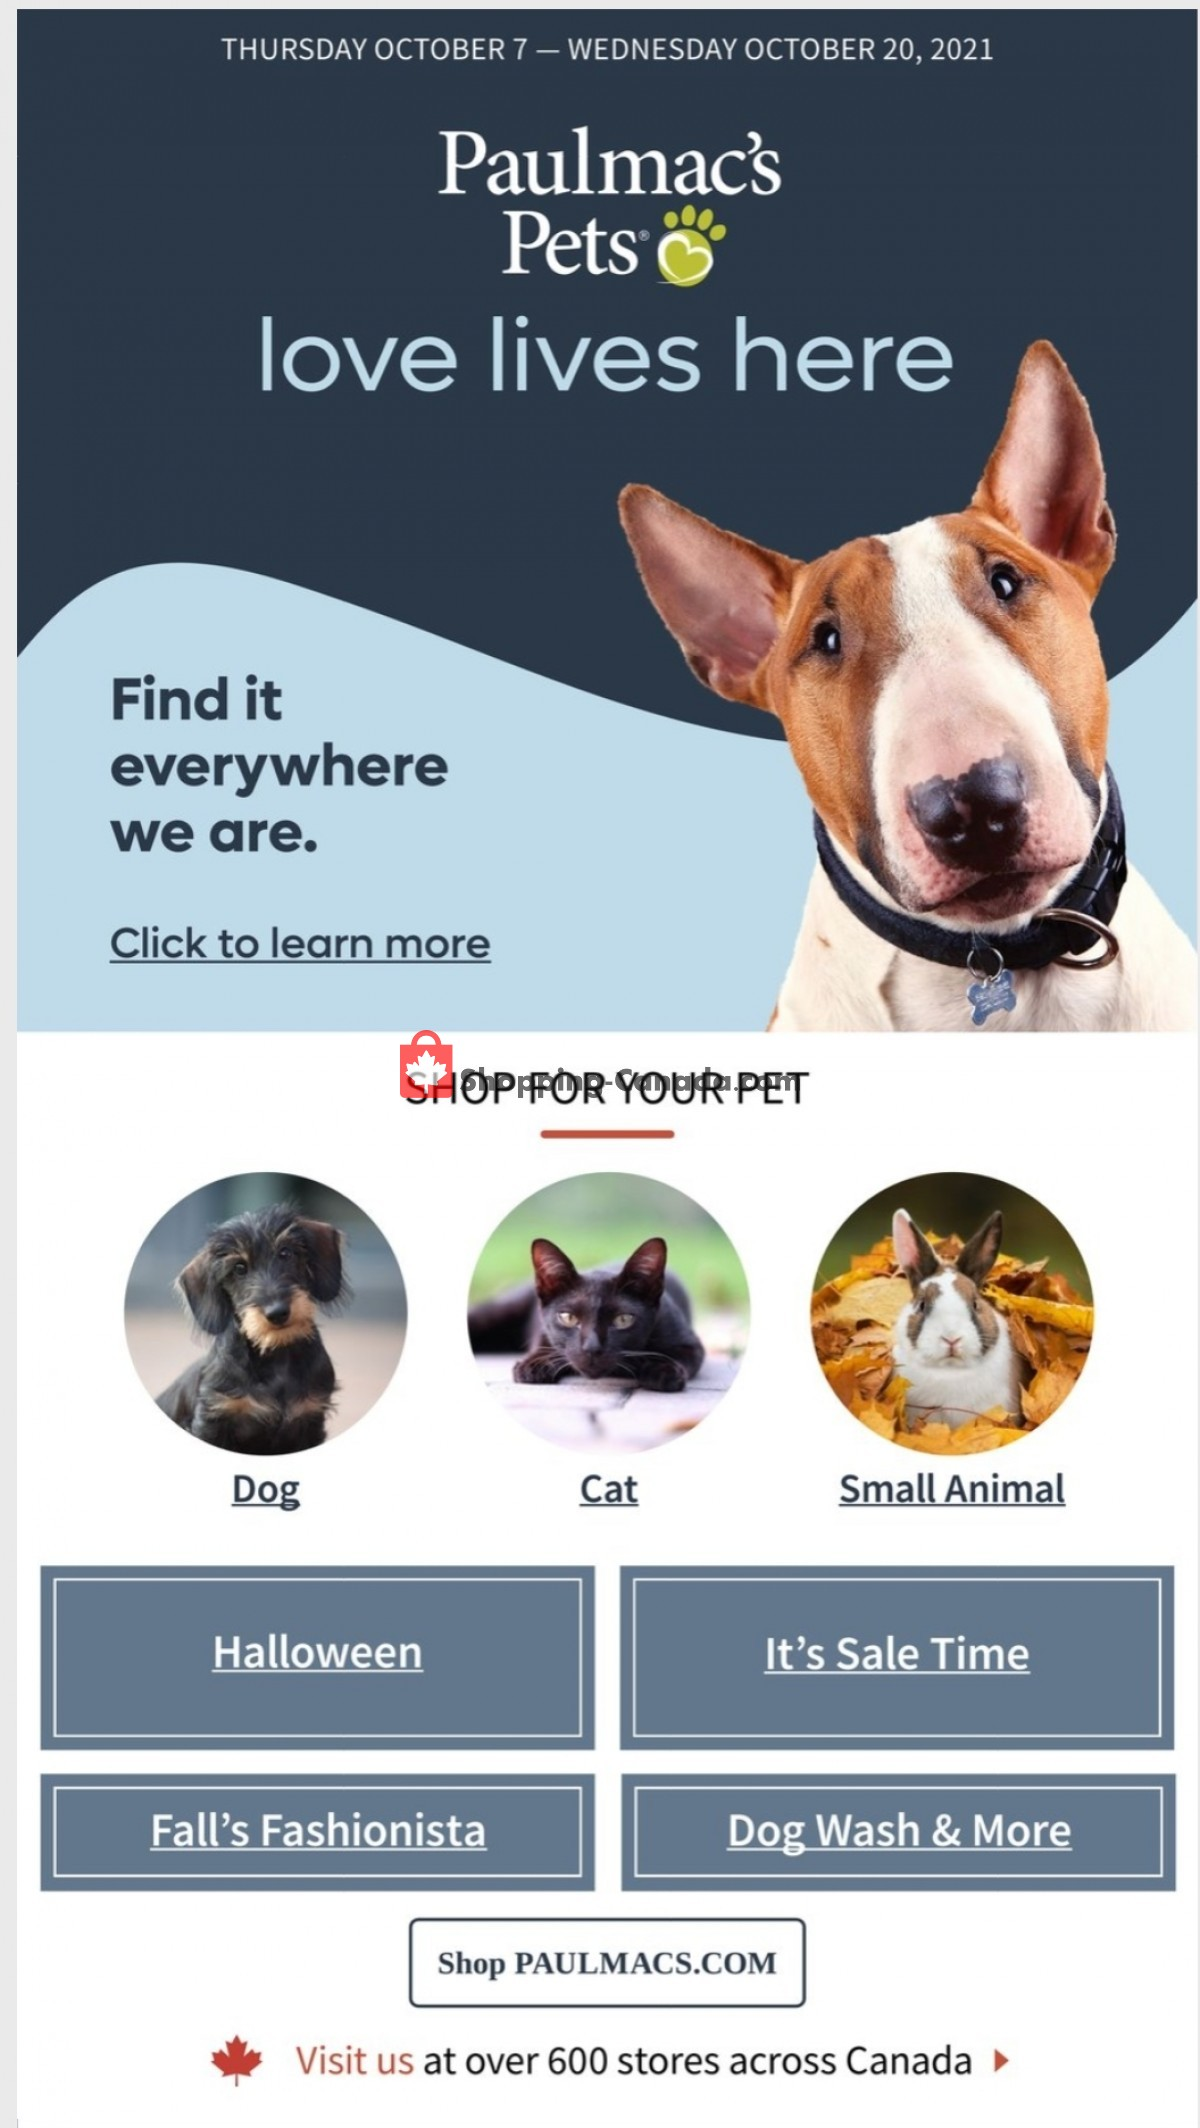 Flyer Paulmac's Pets Canada - from Thursday October 7, 2021 to Wednesday October 20, 2021